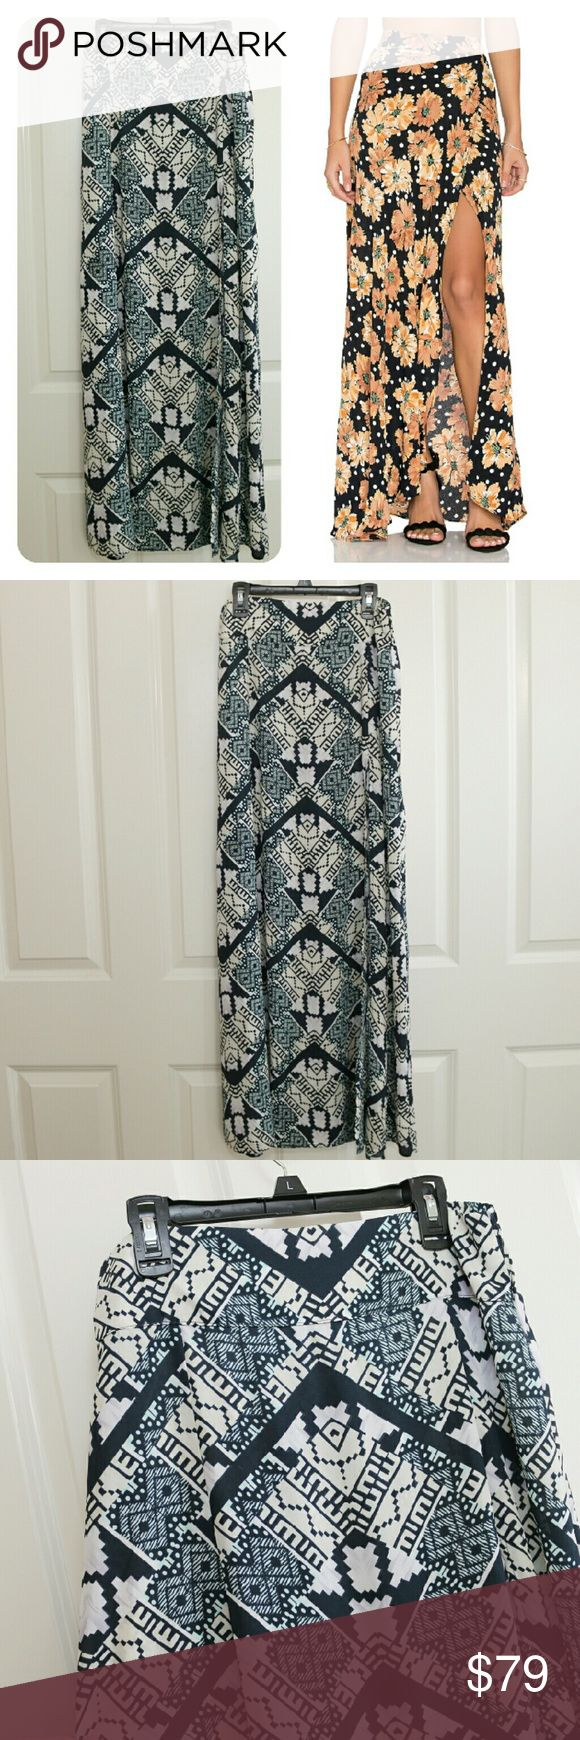 Flynn Skye Wrap it Up Skirt Blues and Pale Yellow Flynn Skye Wrap it Up Skirt.  Size 1.  About 14.5 inch waist.  About 40 inches waist to hem.  This is a previously owned item... but in just like new condition.  I looked it over and couldn't find any flaws.  Feels like brand new.  Blues and pale yellow pattern.  Retails $168.00. *** (stock picture is just to show fit) Flynn Skye Skirts Maxi